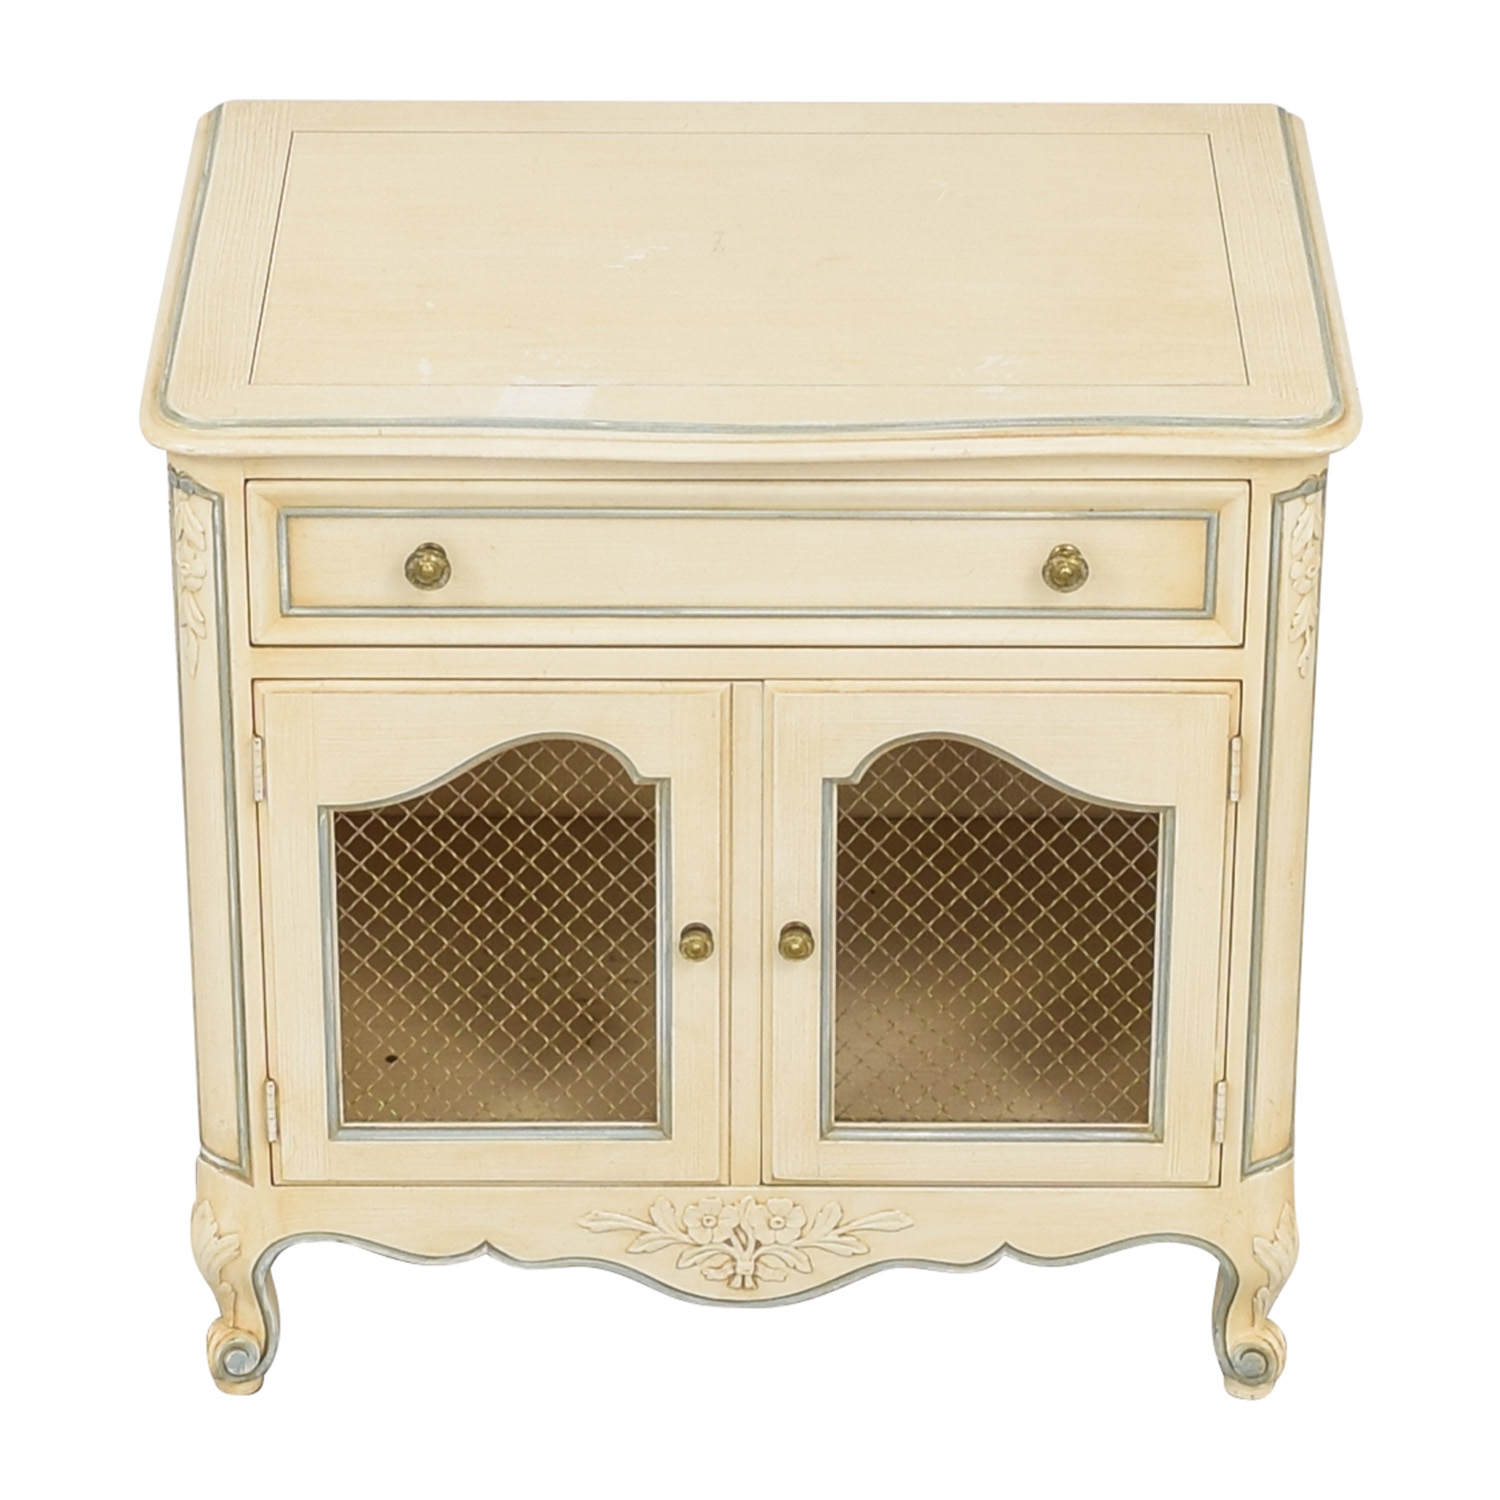 Kindel Kindel Vintage French Provincial Nightstand price